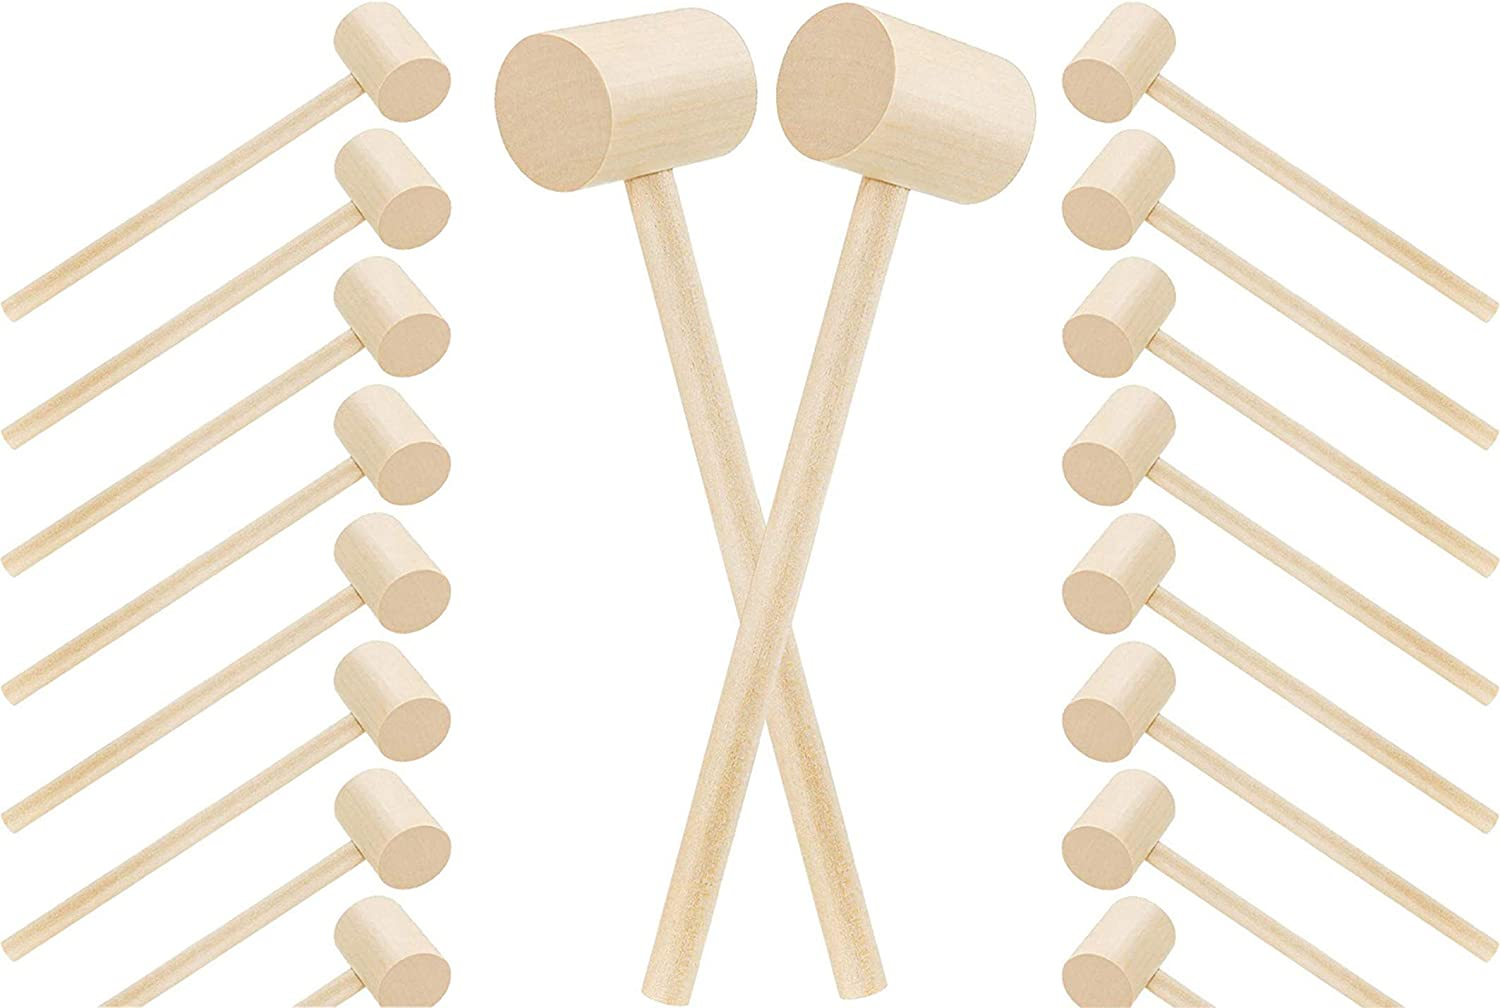 18 pcs Wooden Crab Lobster Mallets Seafood Shellfish Crab Wood Hammers Mini Solid Wooden Natural Mallets for Cracking Seafood Tool SuppliesCraft Toys for Kids